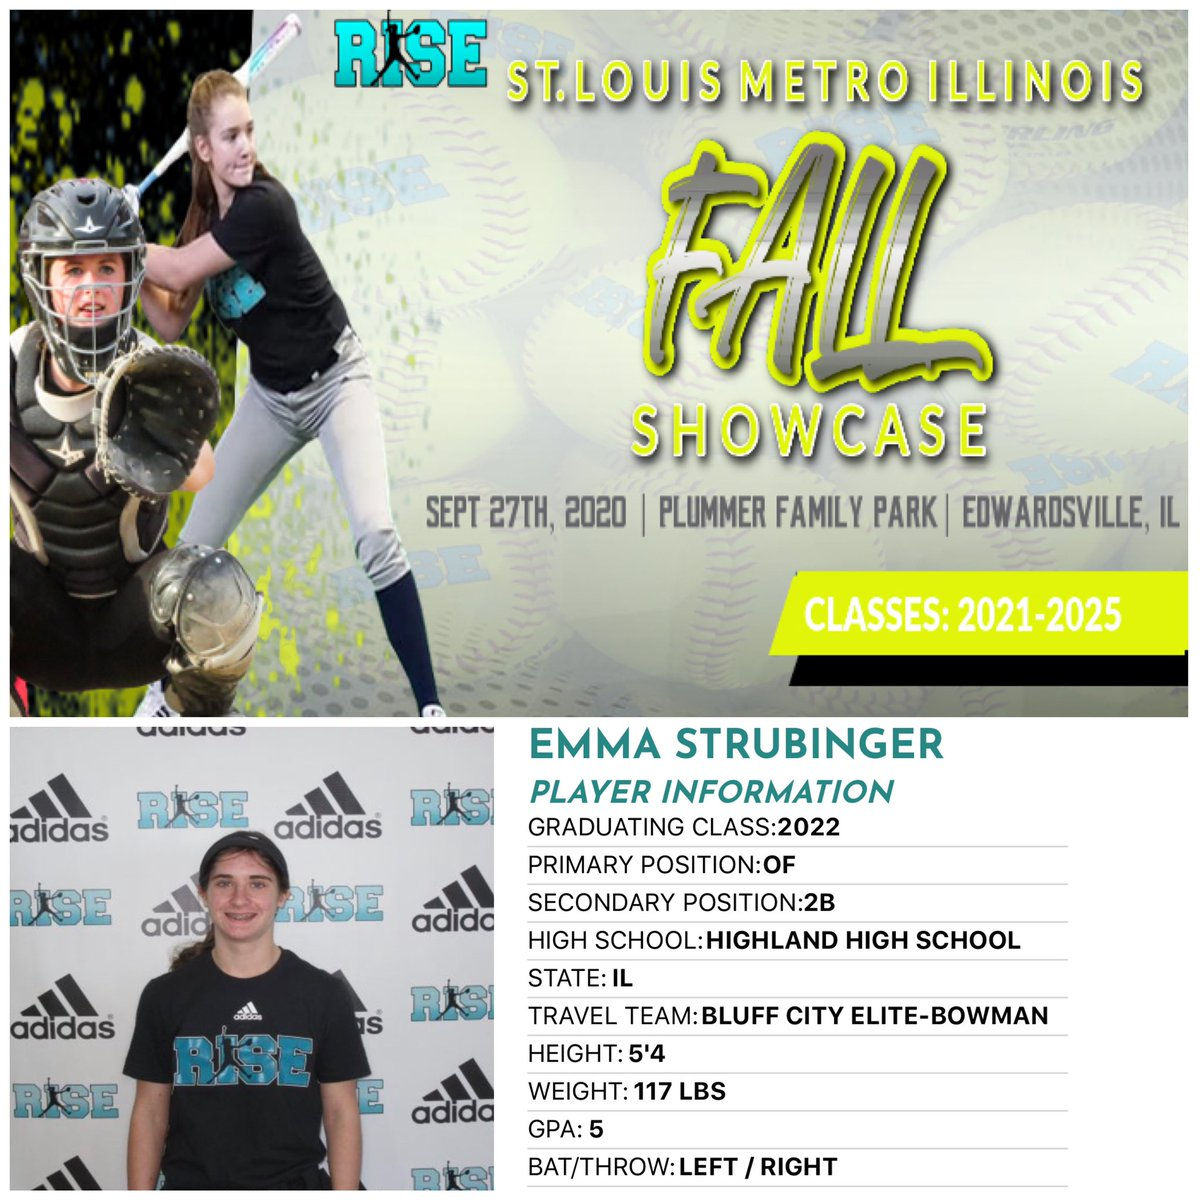 2022 Emma Strubinger  (Highland HS & Bluff City Elite) is coming back! - She will be updating 📸 Picture 📈Verified Stats 🎥 2nd Skills video 💻RISE profile #whosnext? #Adidas #getnoticed  5 Days away, Register NOW➡️ https://t.co/TlXdpdSlcV https://t.co/t8oYlnpQaO